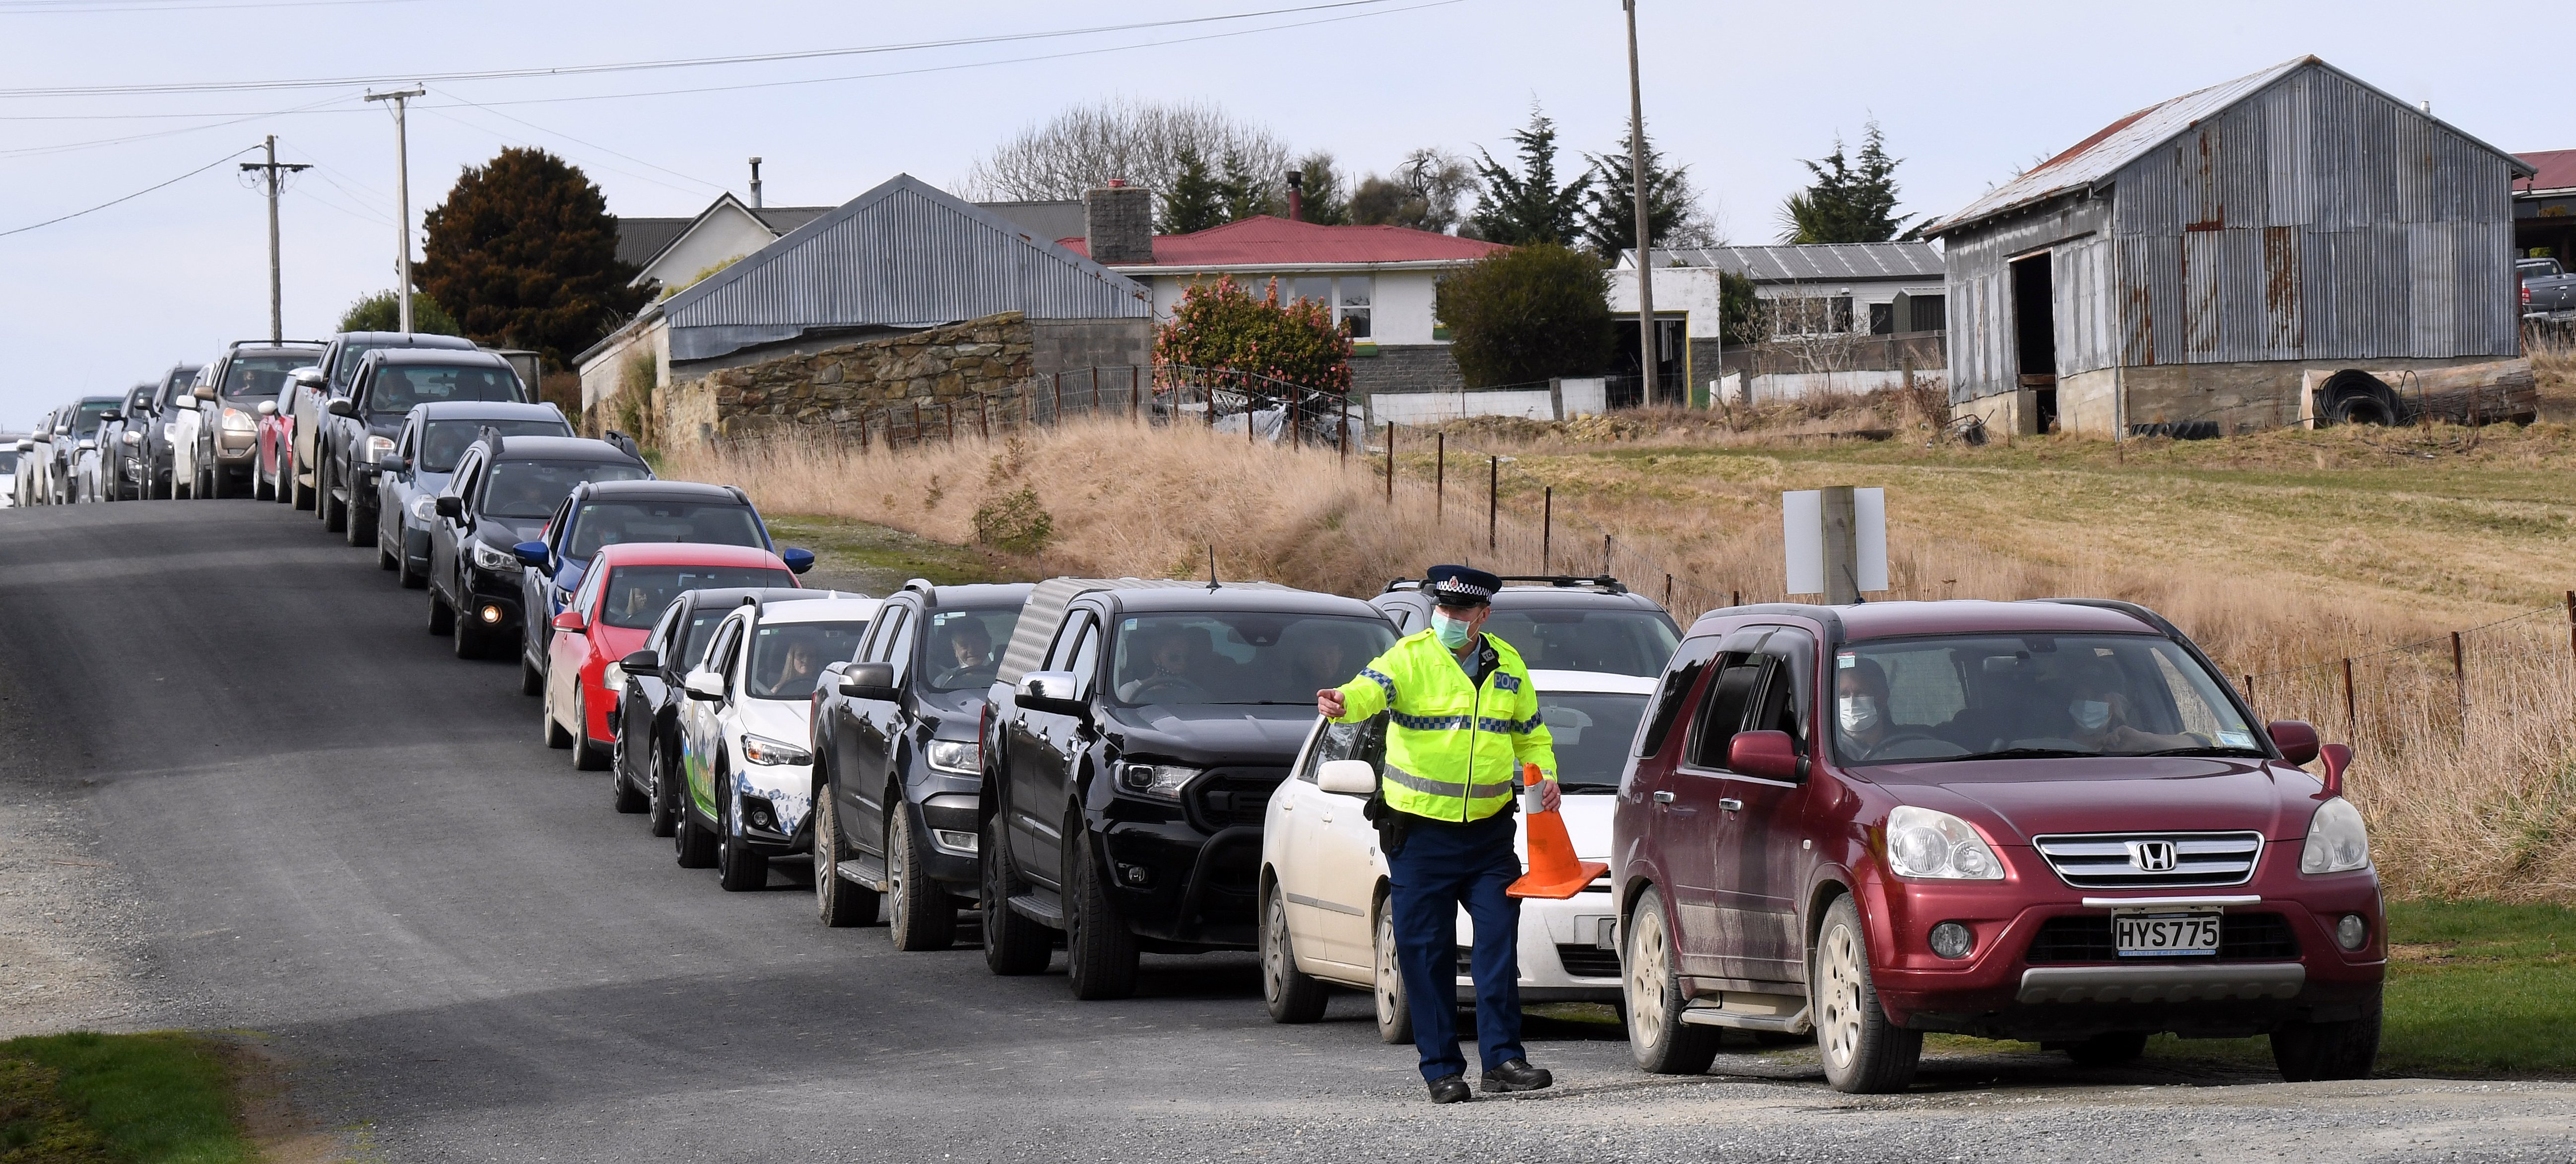 Constable Paul Alden, of Lawrence, marshals vehicles queuing at the entrance to the town's...